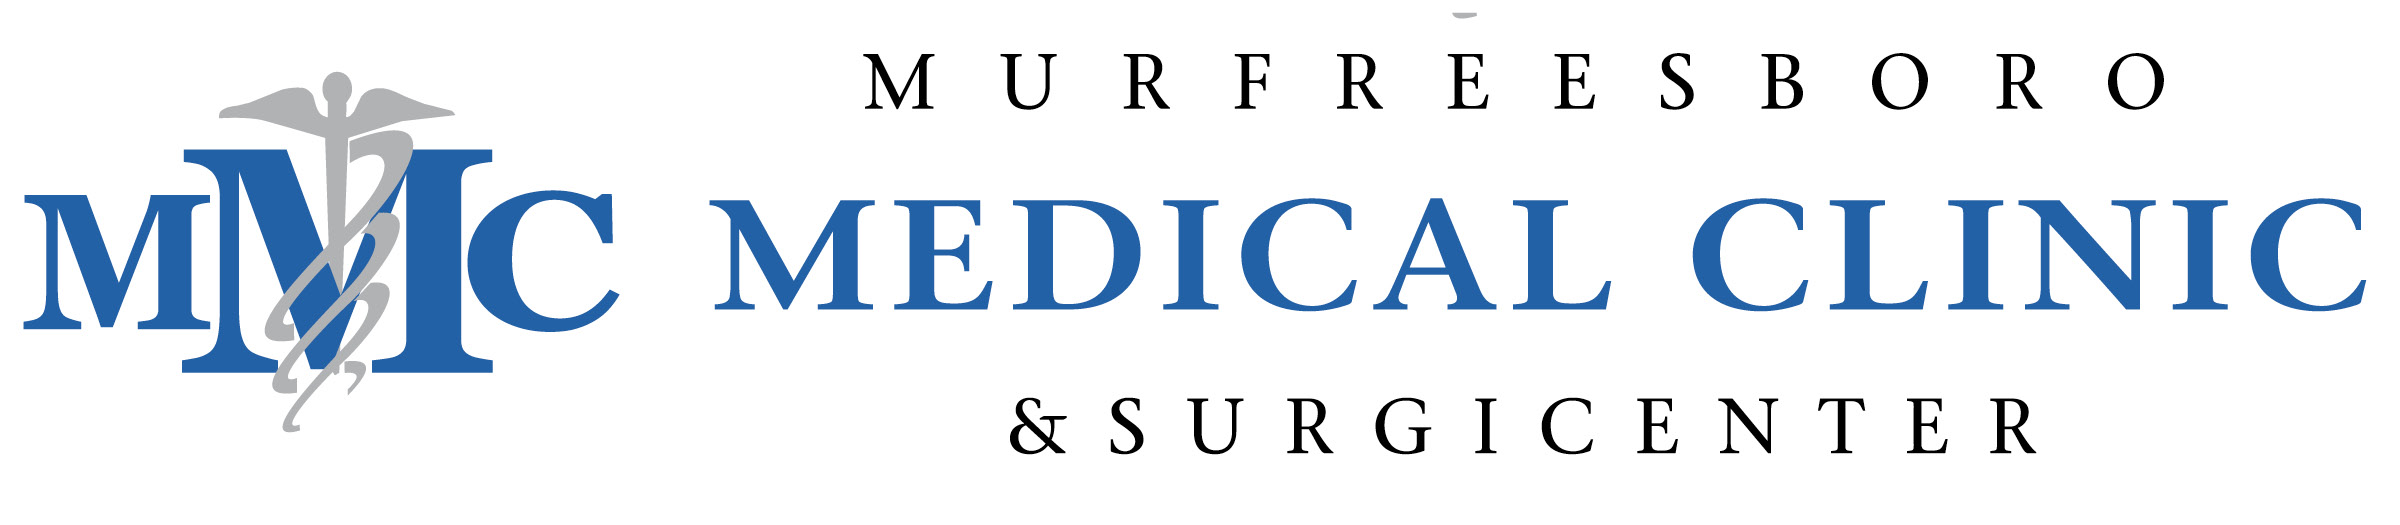 Murfreesboro Medical Clinic logo